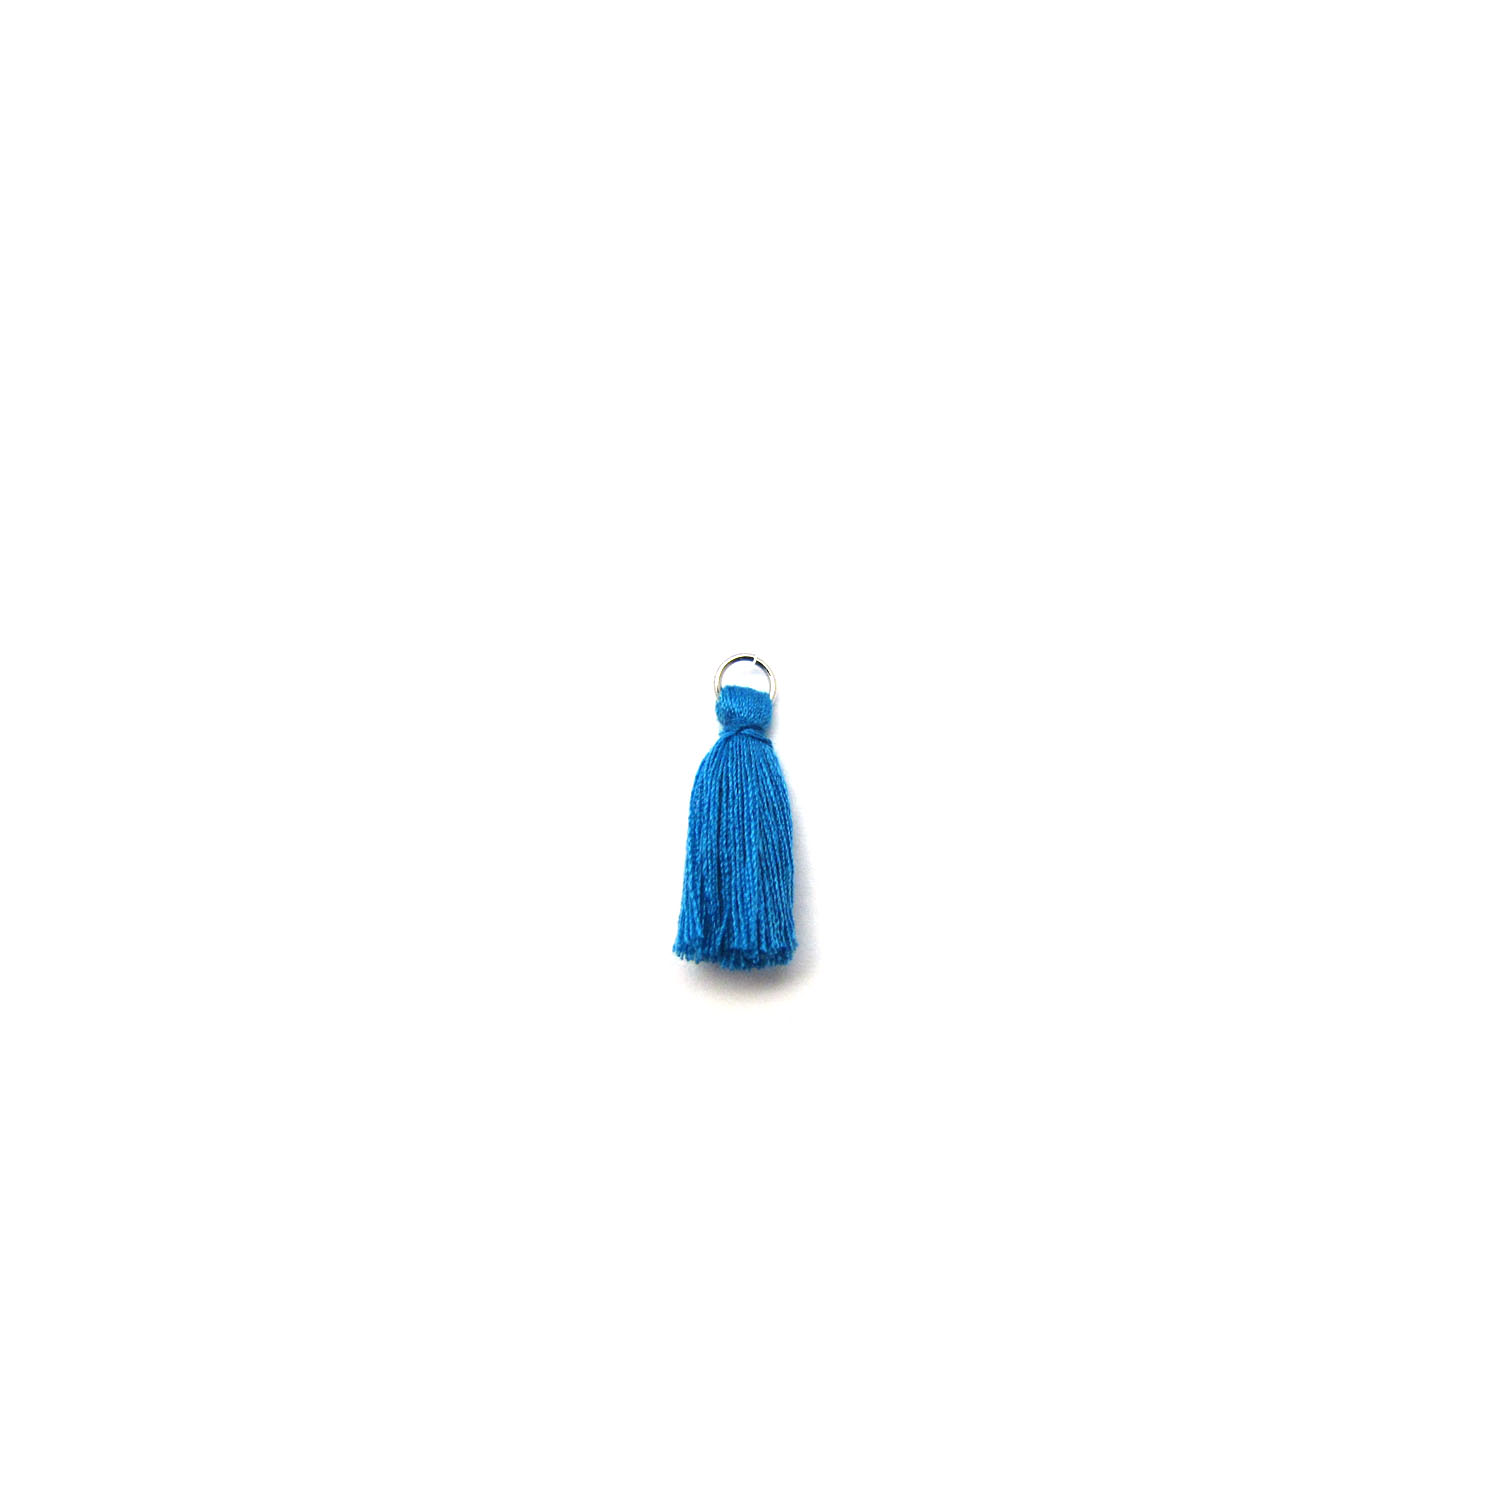 3cm cotton tassel with base metal silver jump ring - capri blue